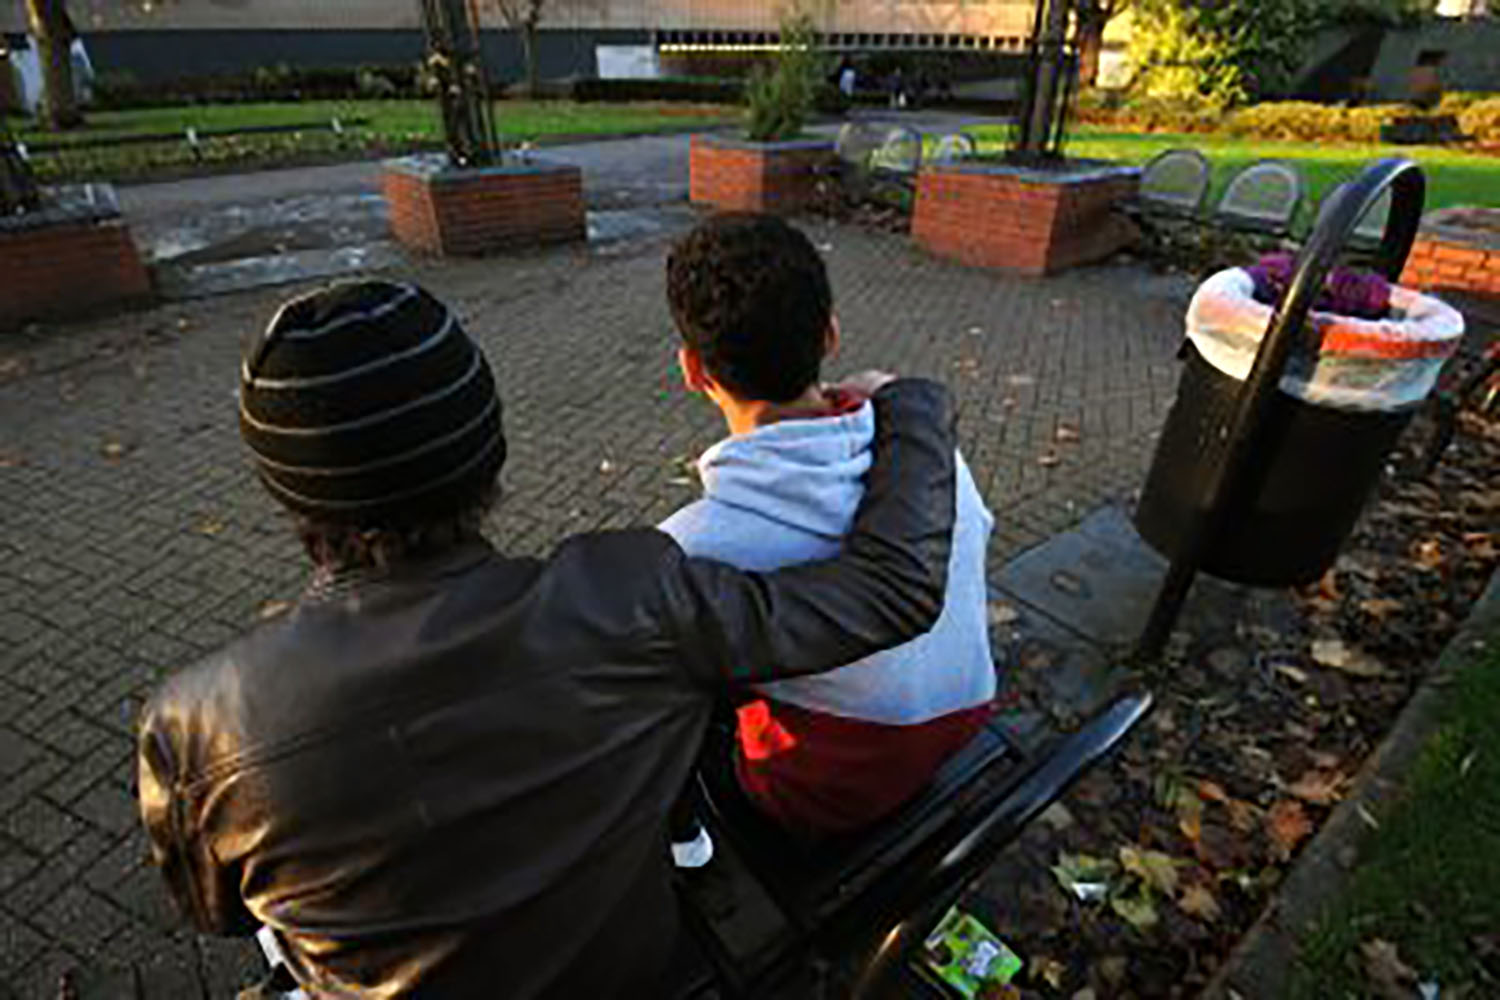 two young men sitting on a bench one with an arm around the other